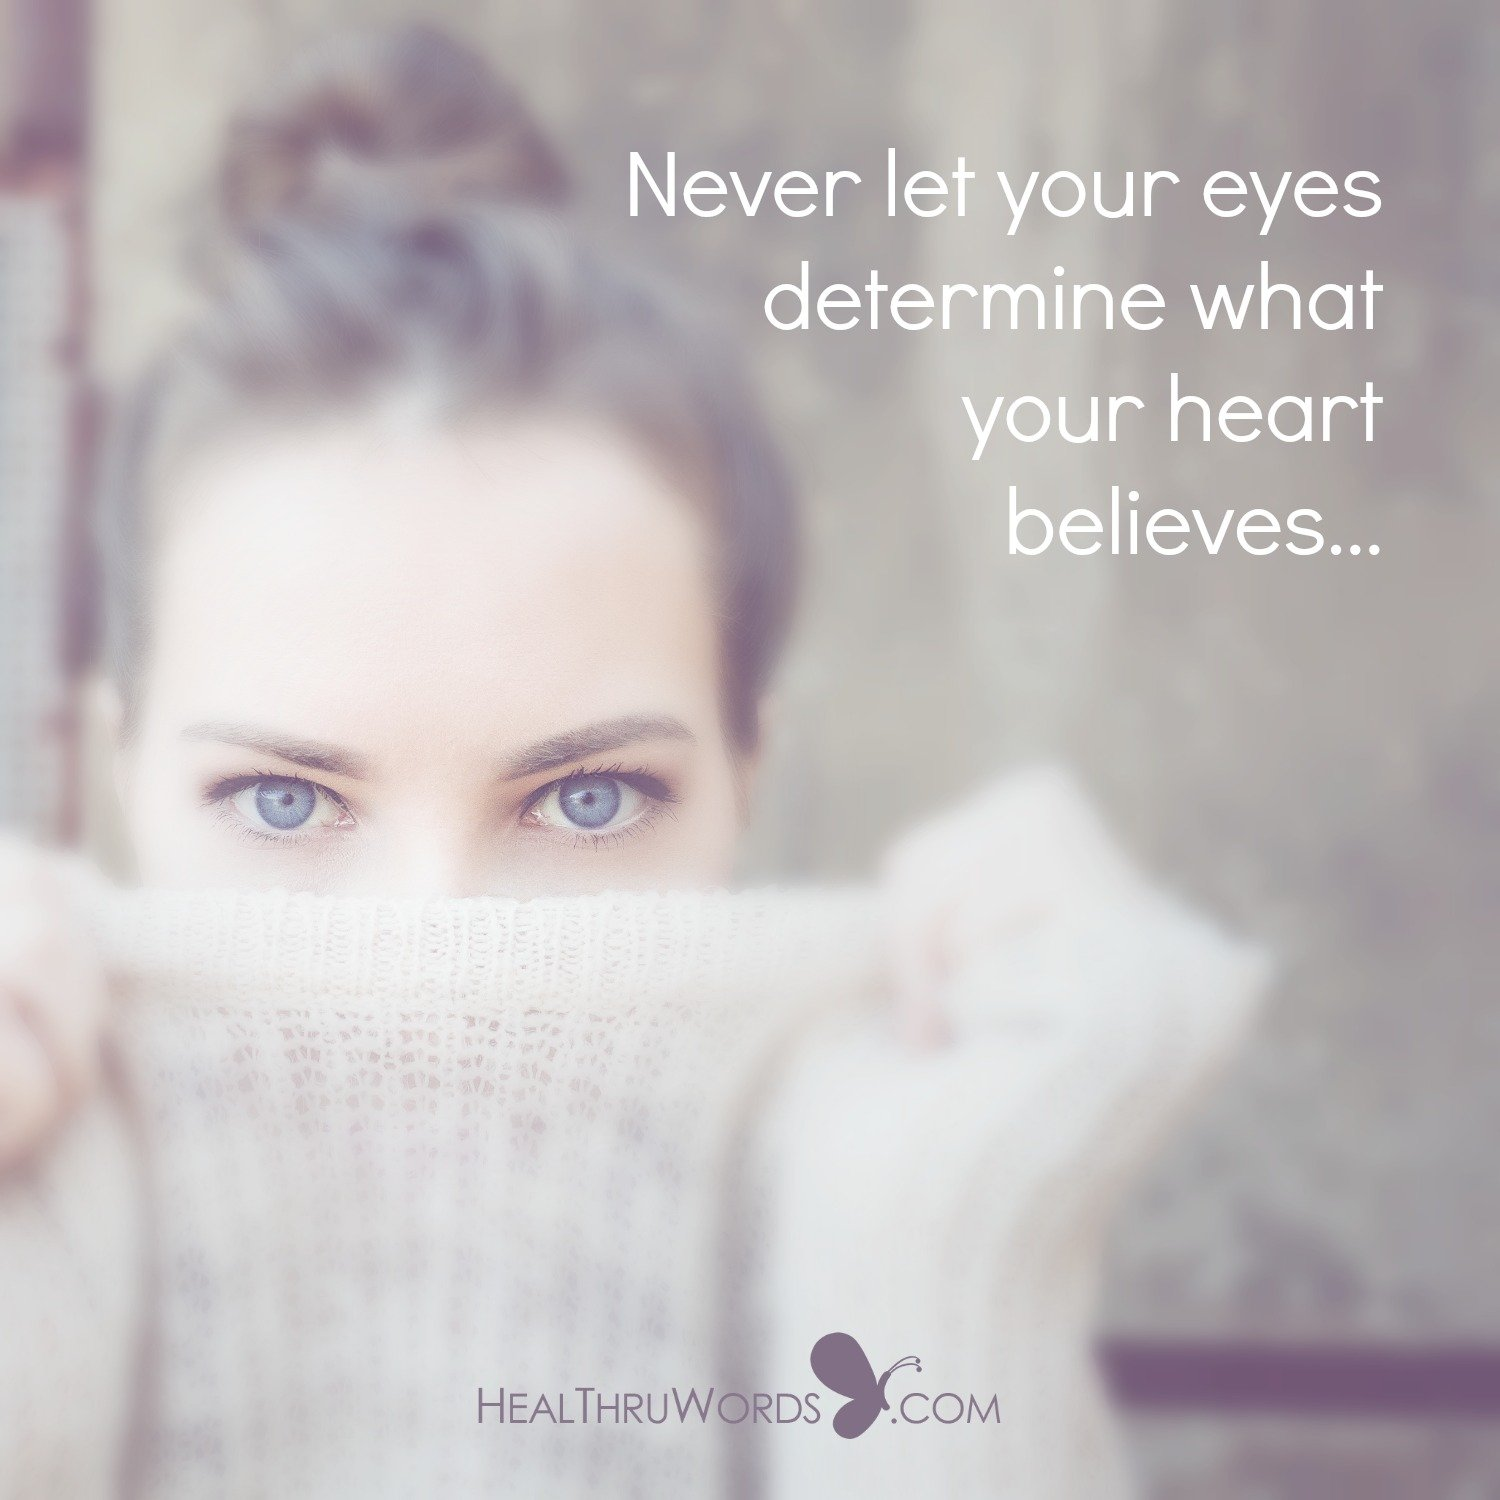 Inspirational Image: What The Eyes Believe